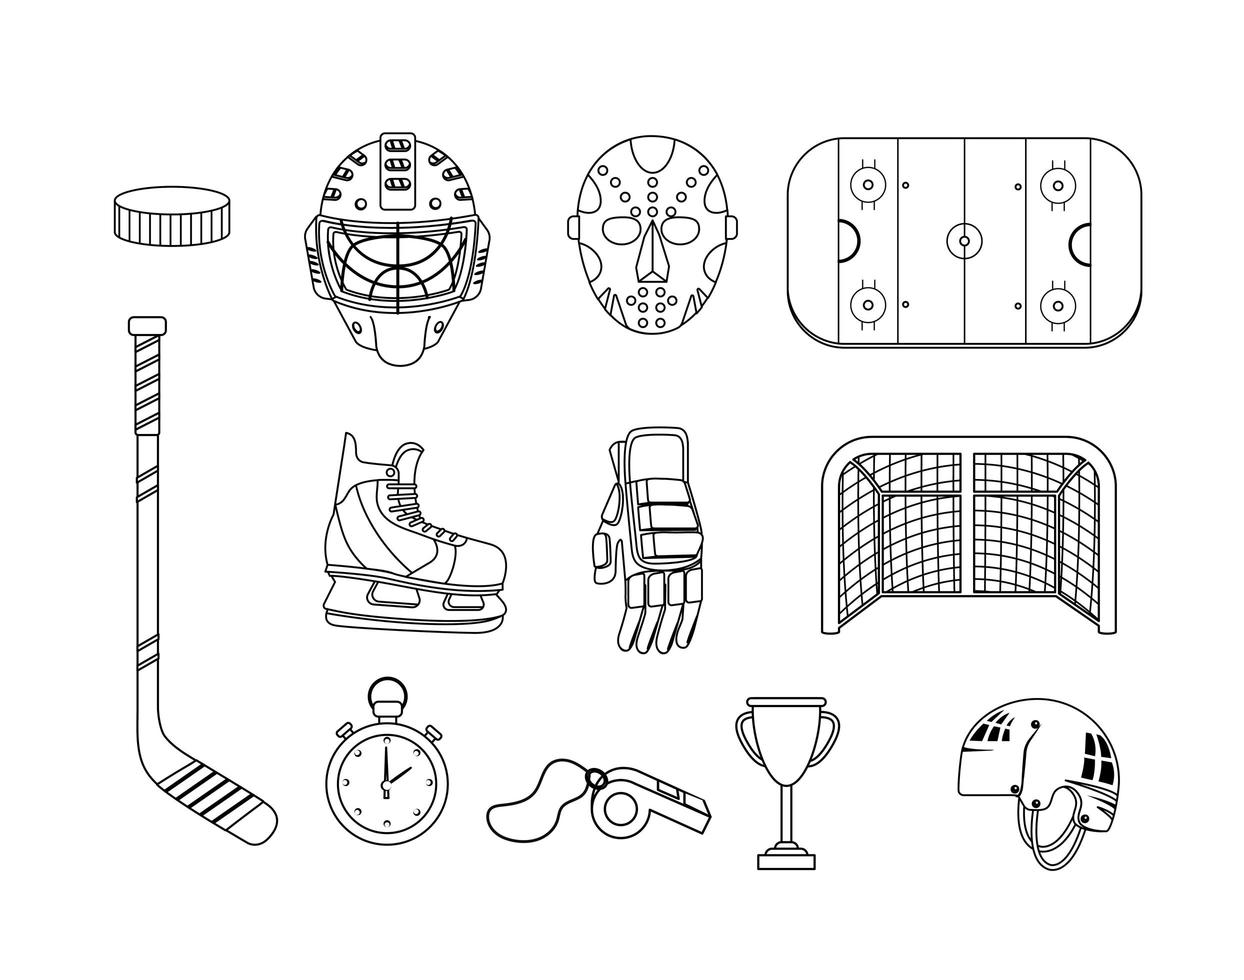 Set of hockey equipment and professional uniform icons vector